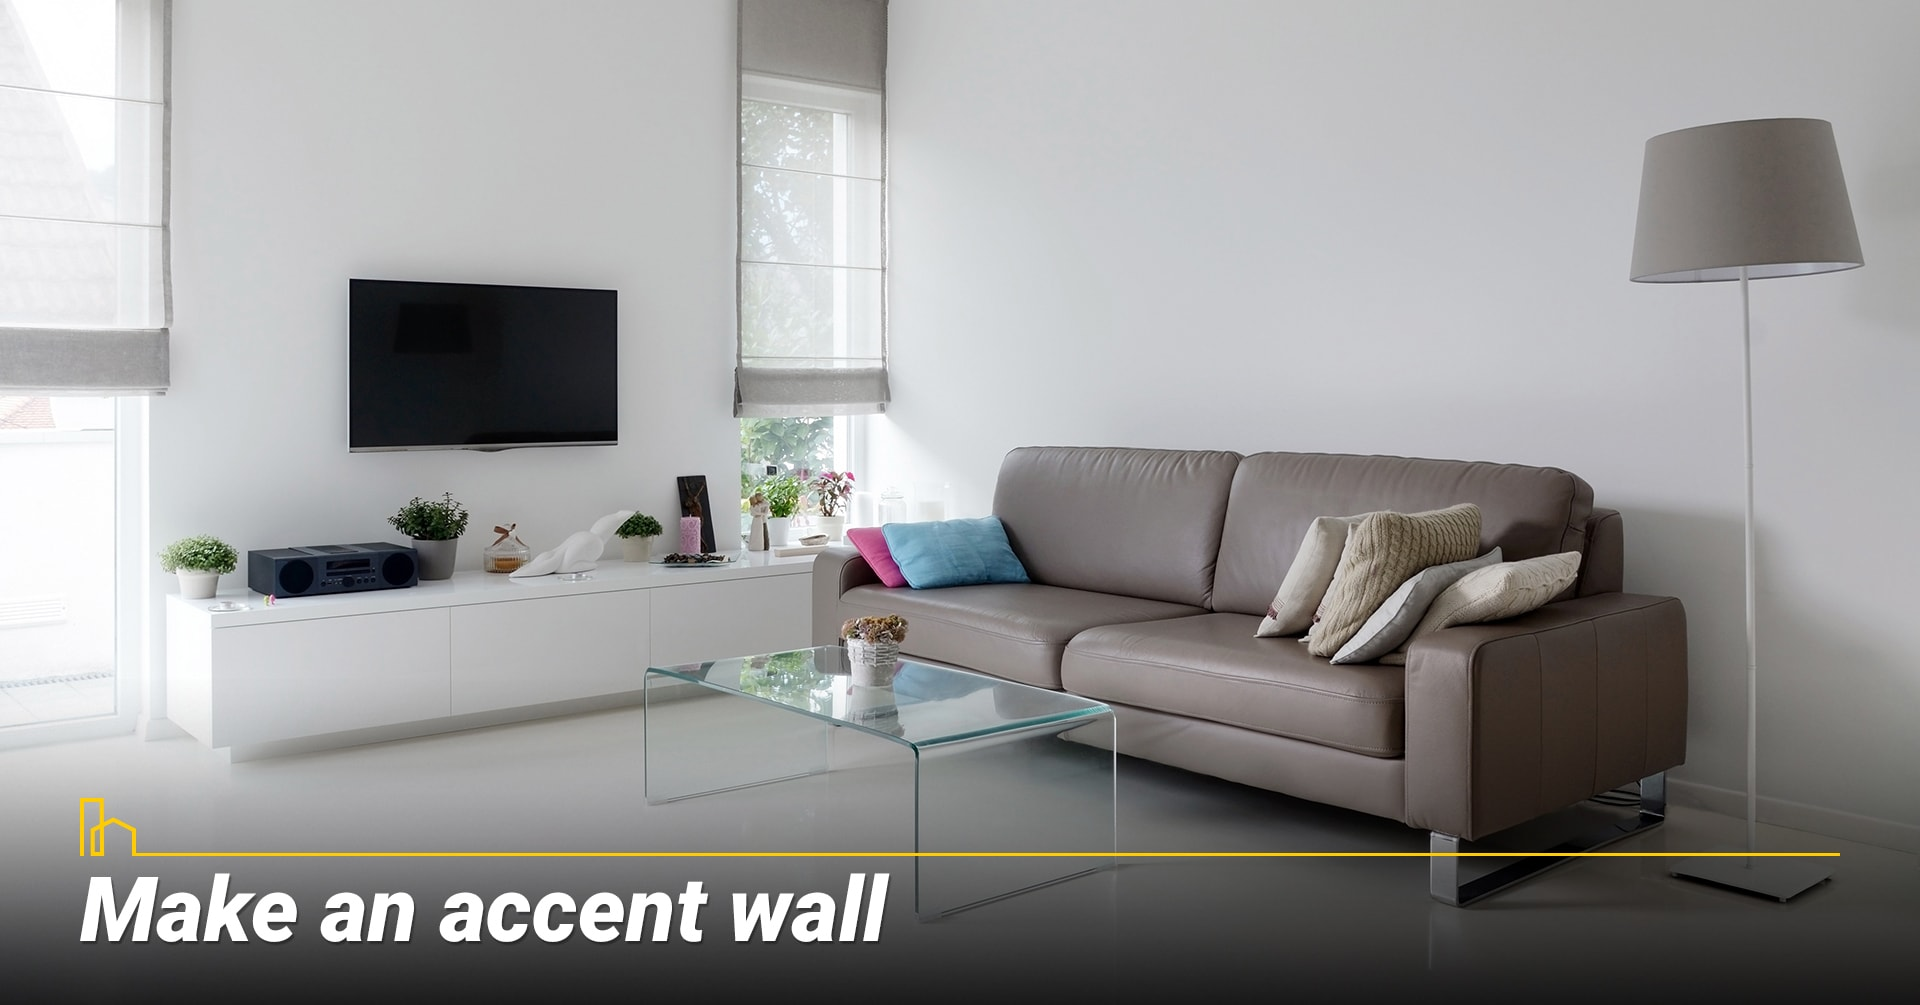 Make an accent wall, upgrade your walls